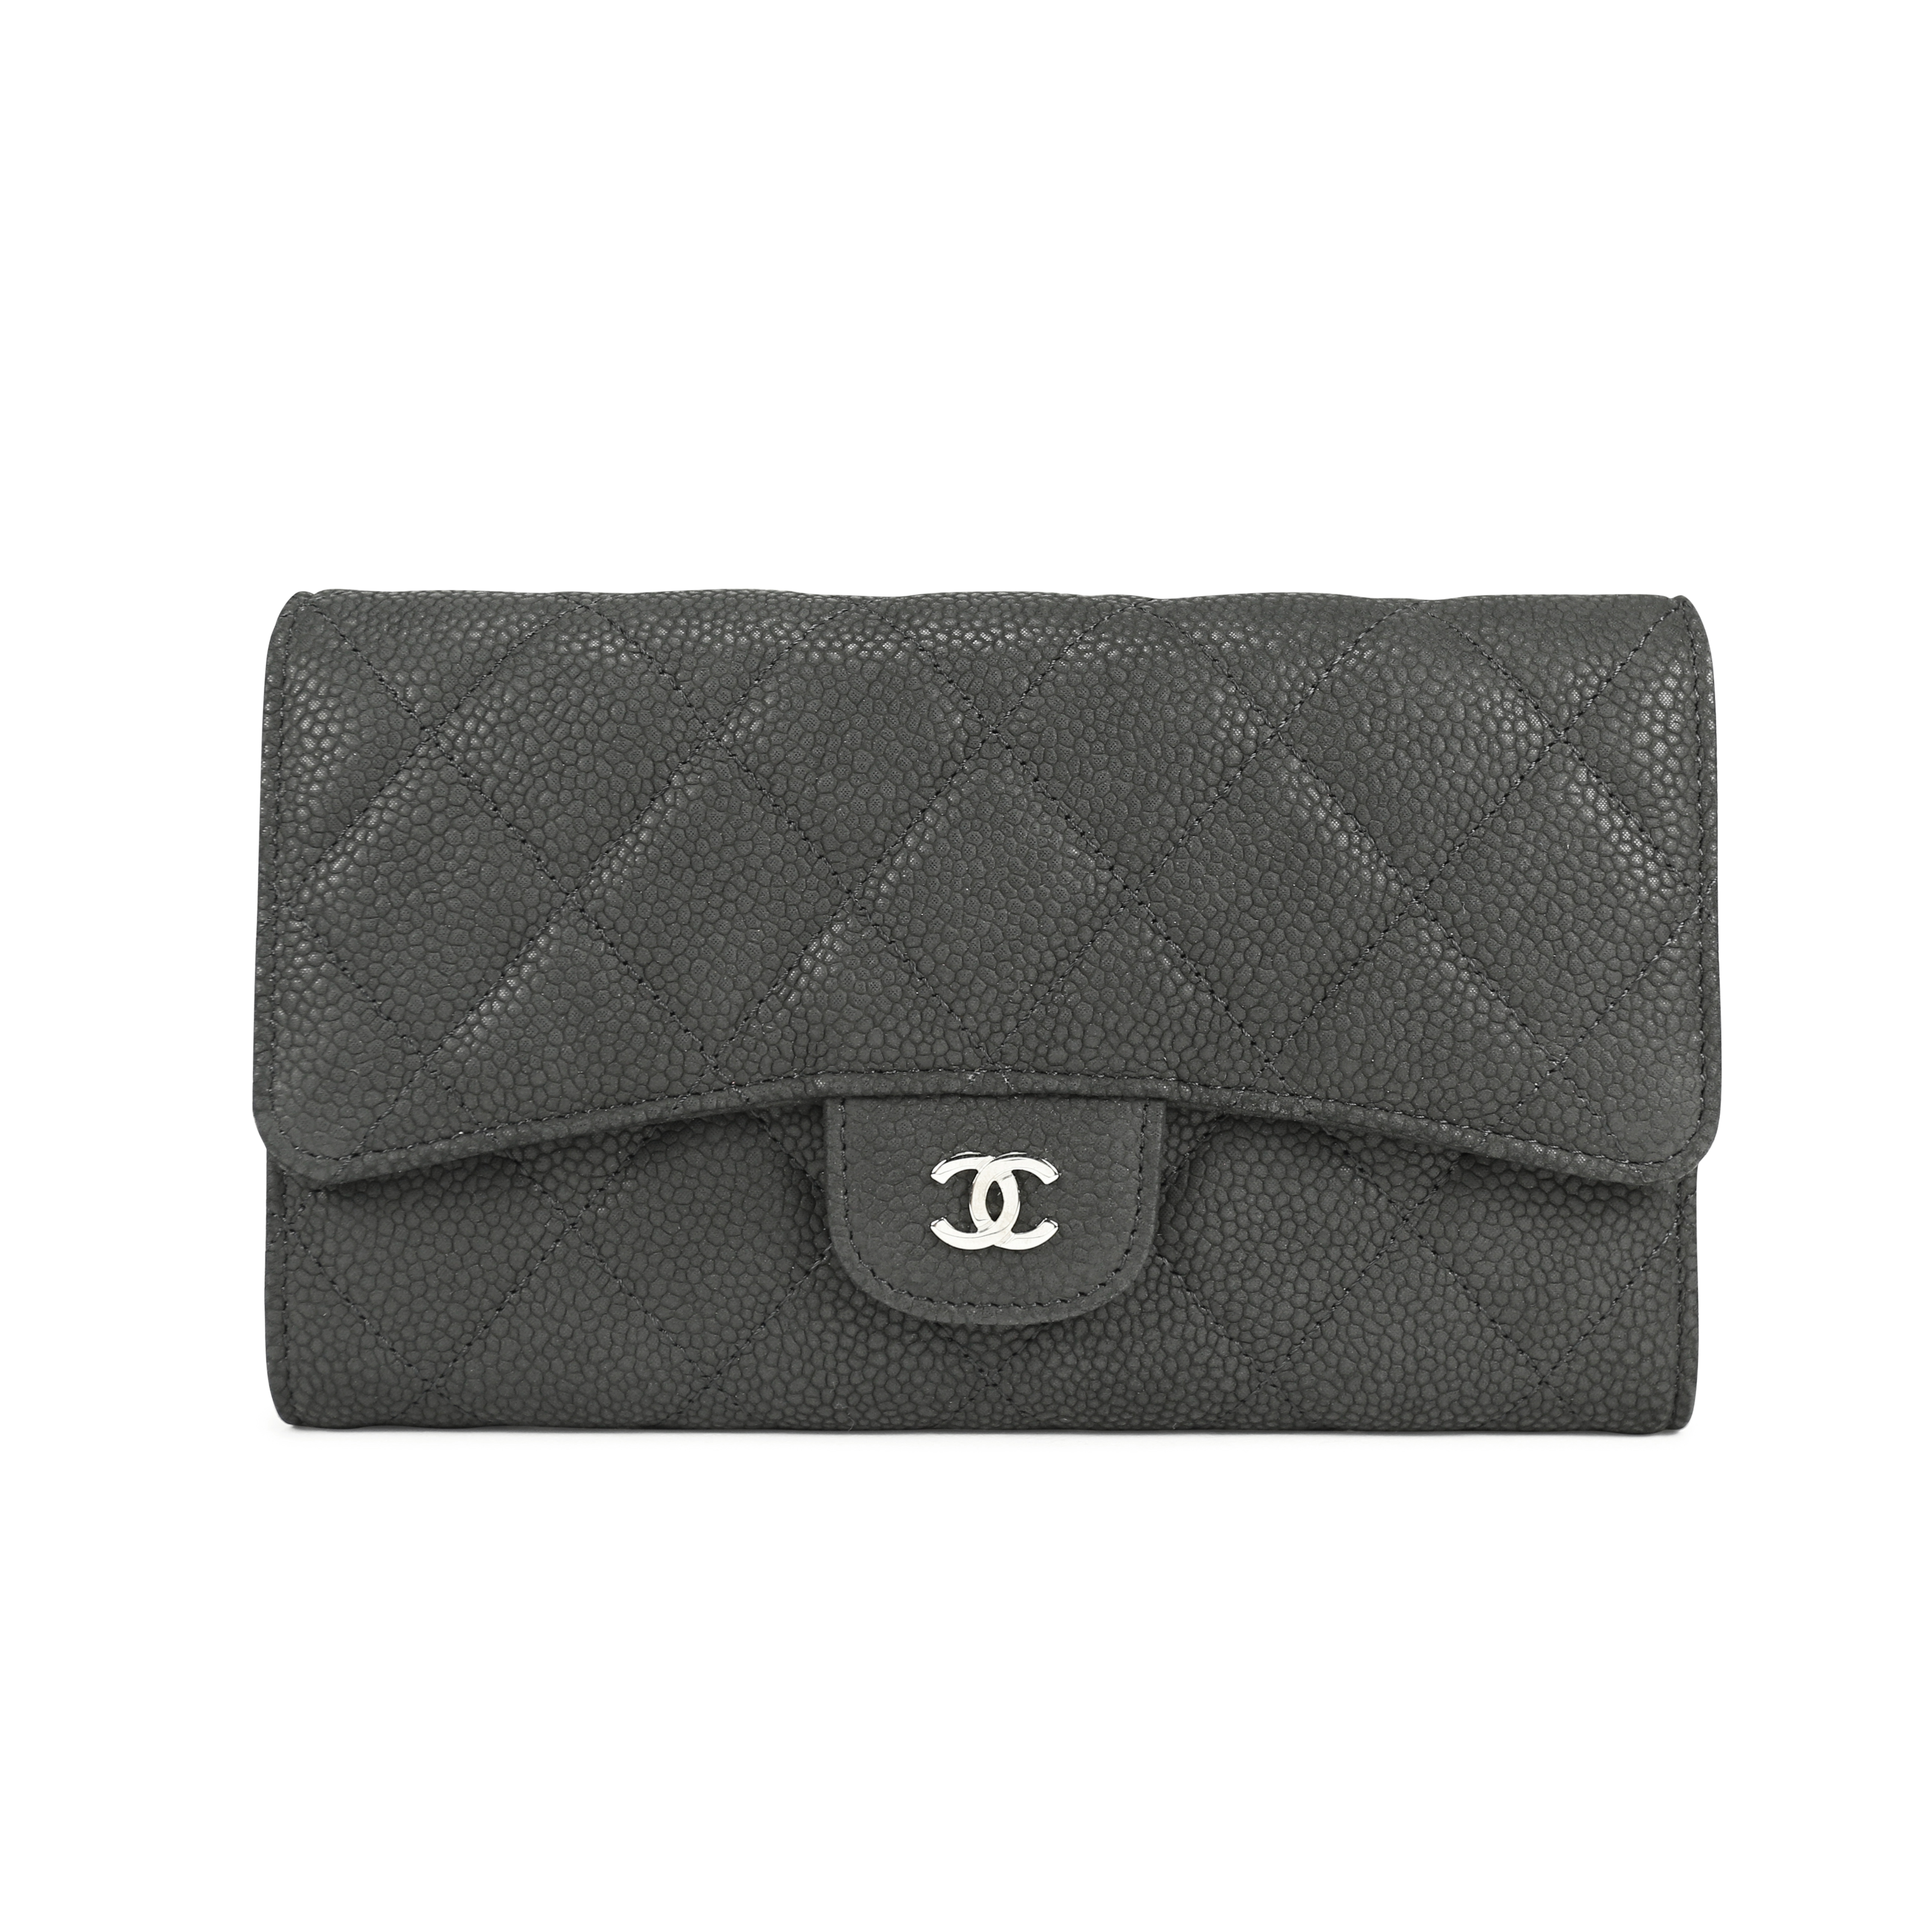 7e894a09ed4ea2 Authentic Second Hand Chanel Caviar Quilted Gusset Long Flap Wallet  (PSS-092-00013) | THE FIFTH COLLECTION